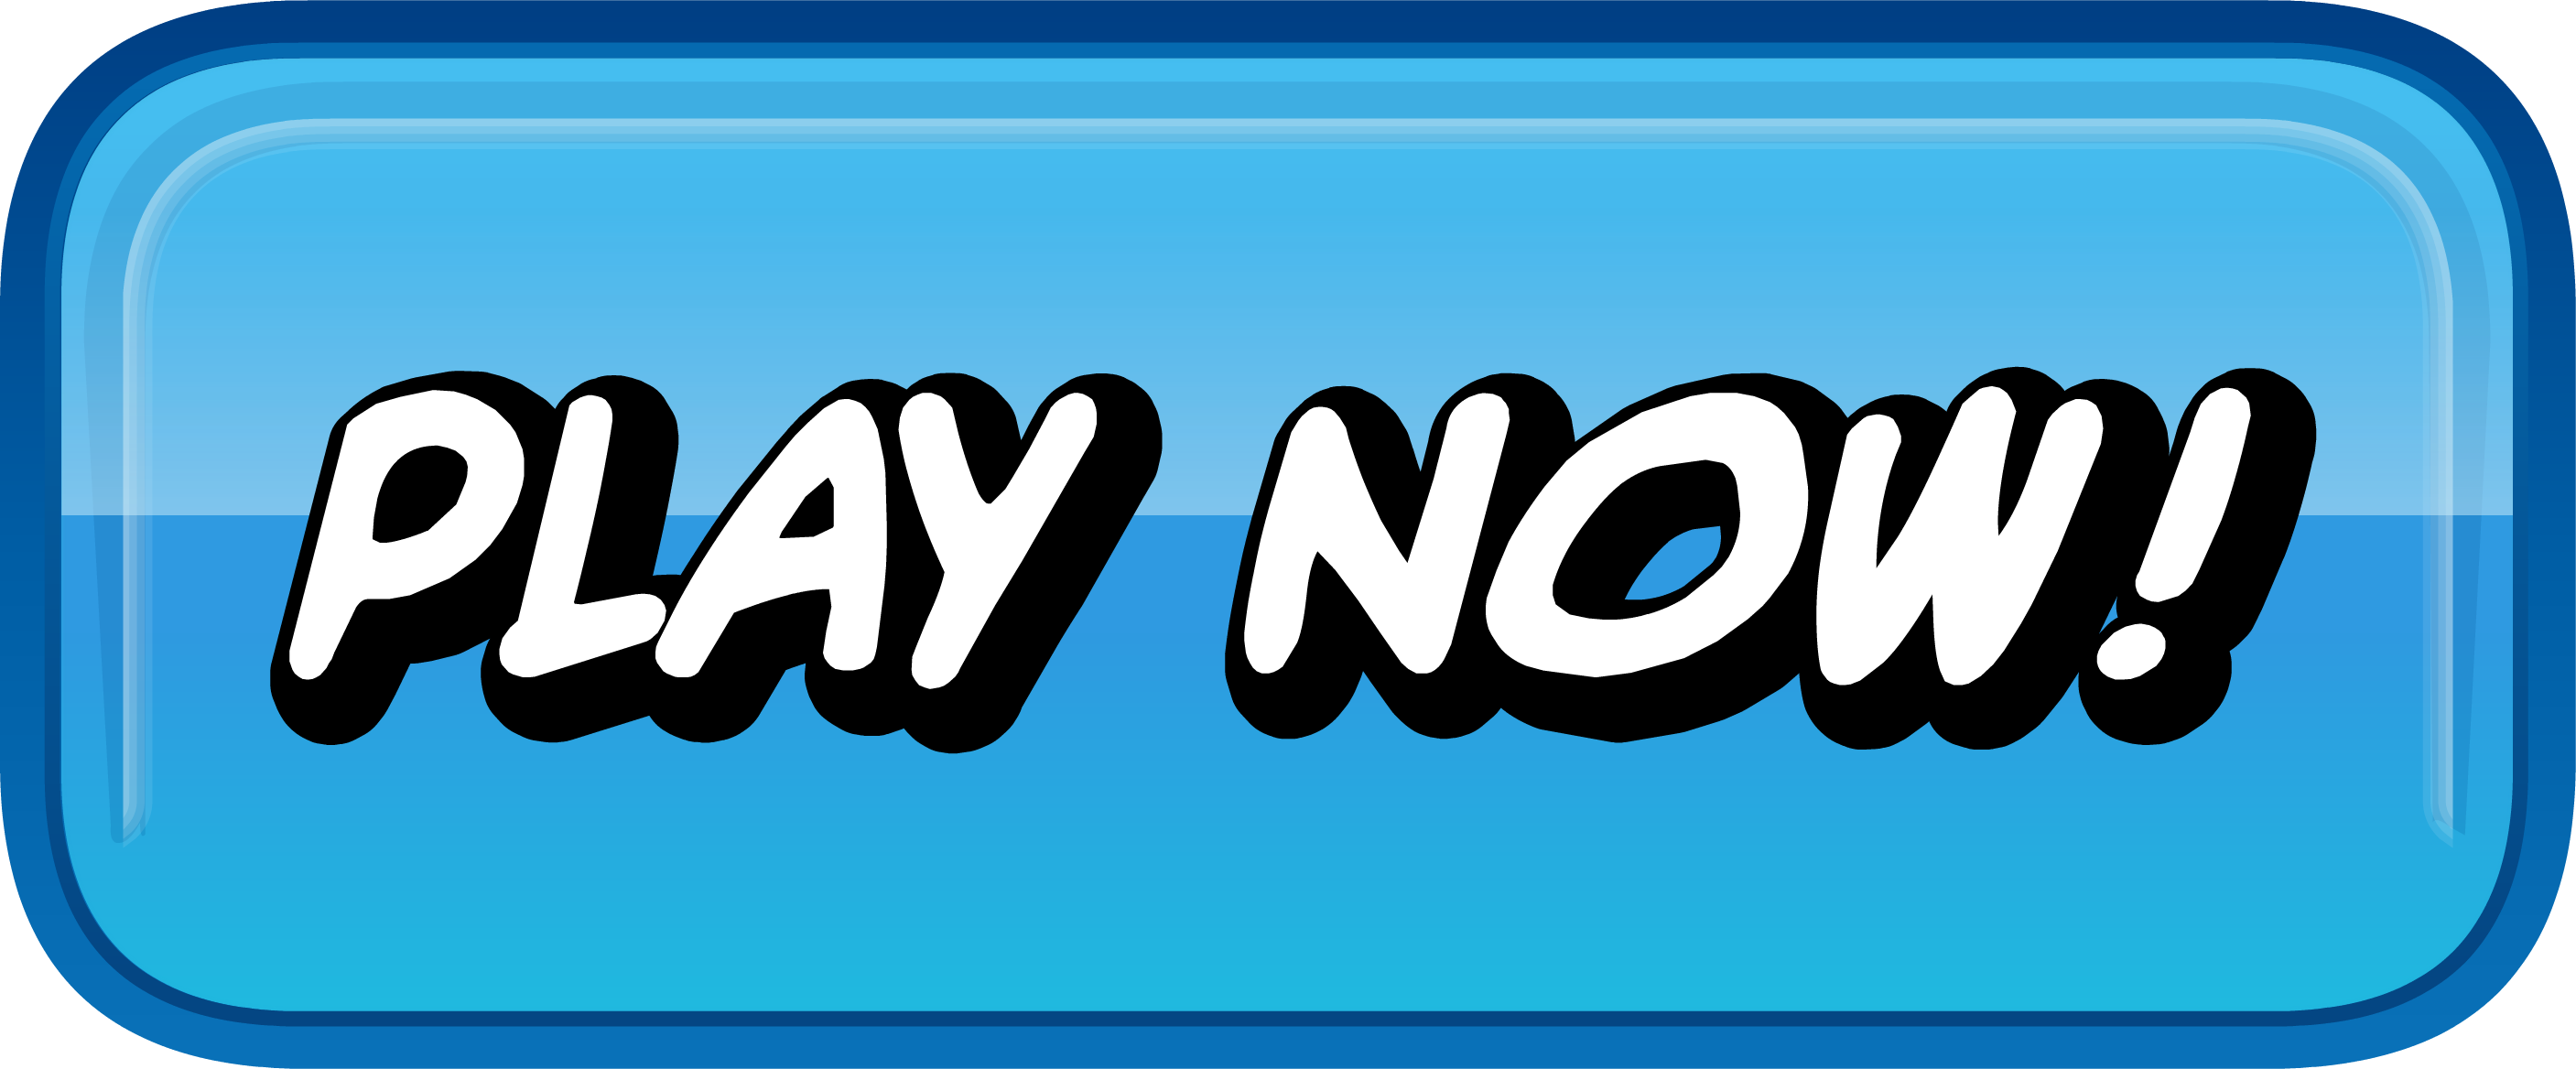 Plenty on Twenty Casino Slot Online | PLAY NOW